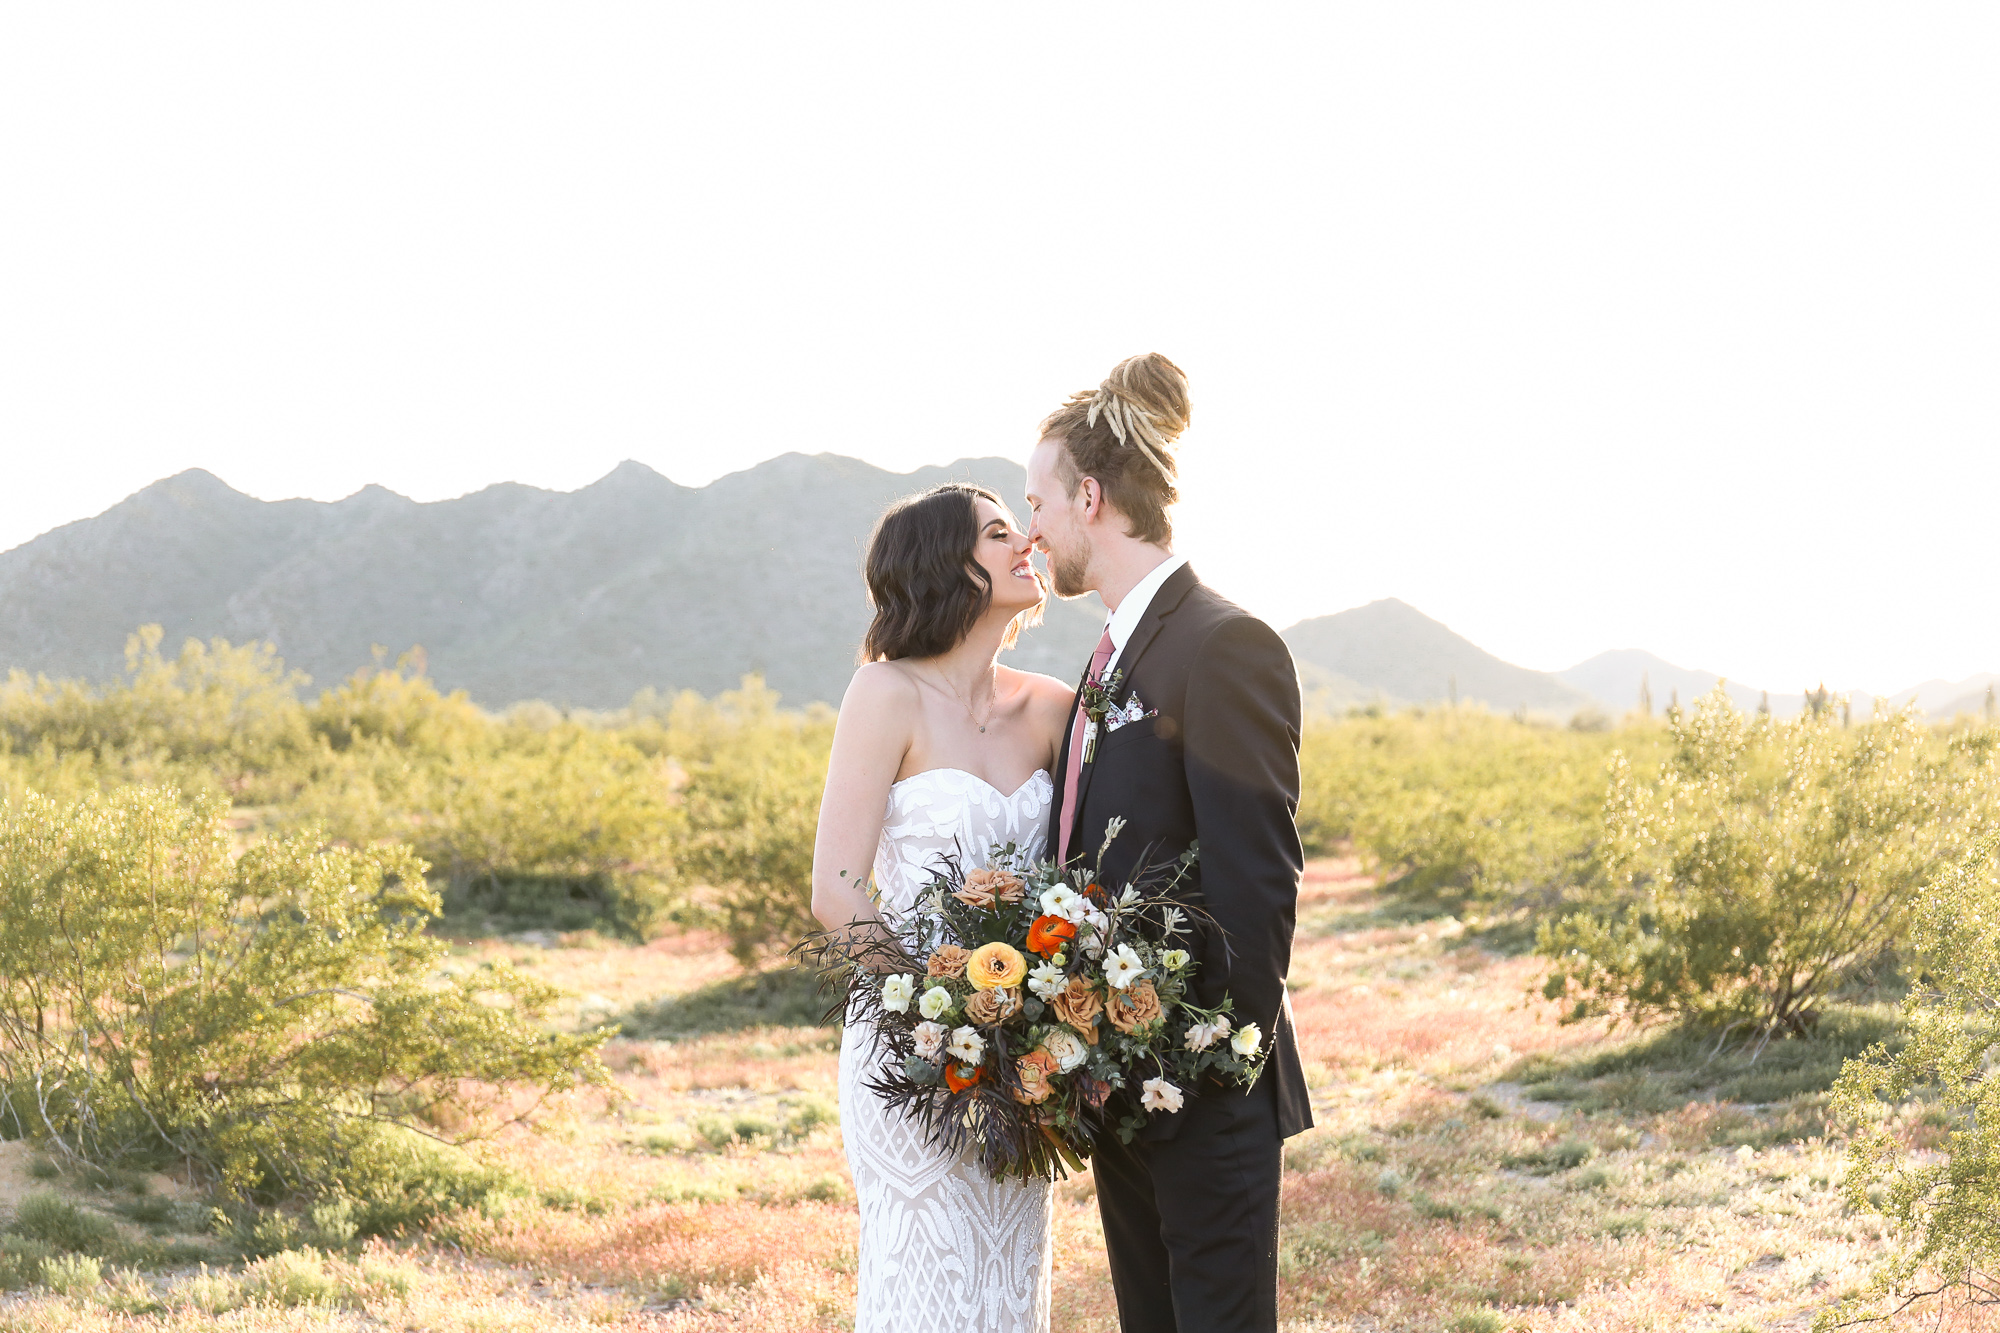 torres_katie_az_wedding_photographer__-27.jpg